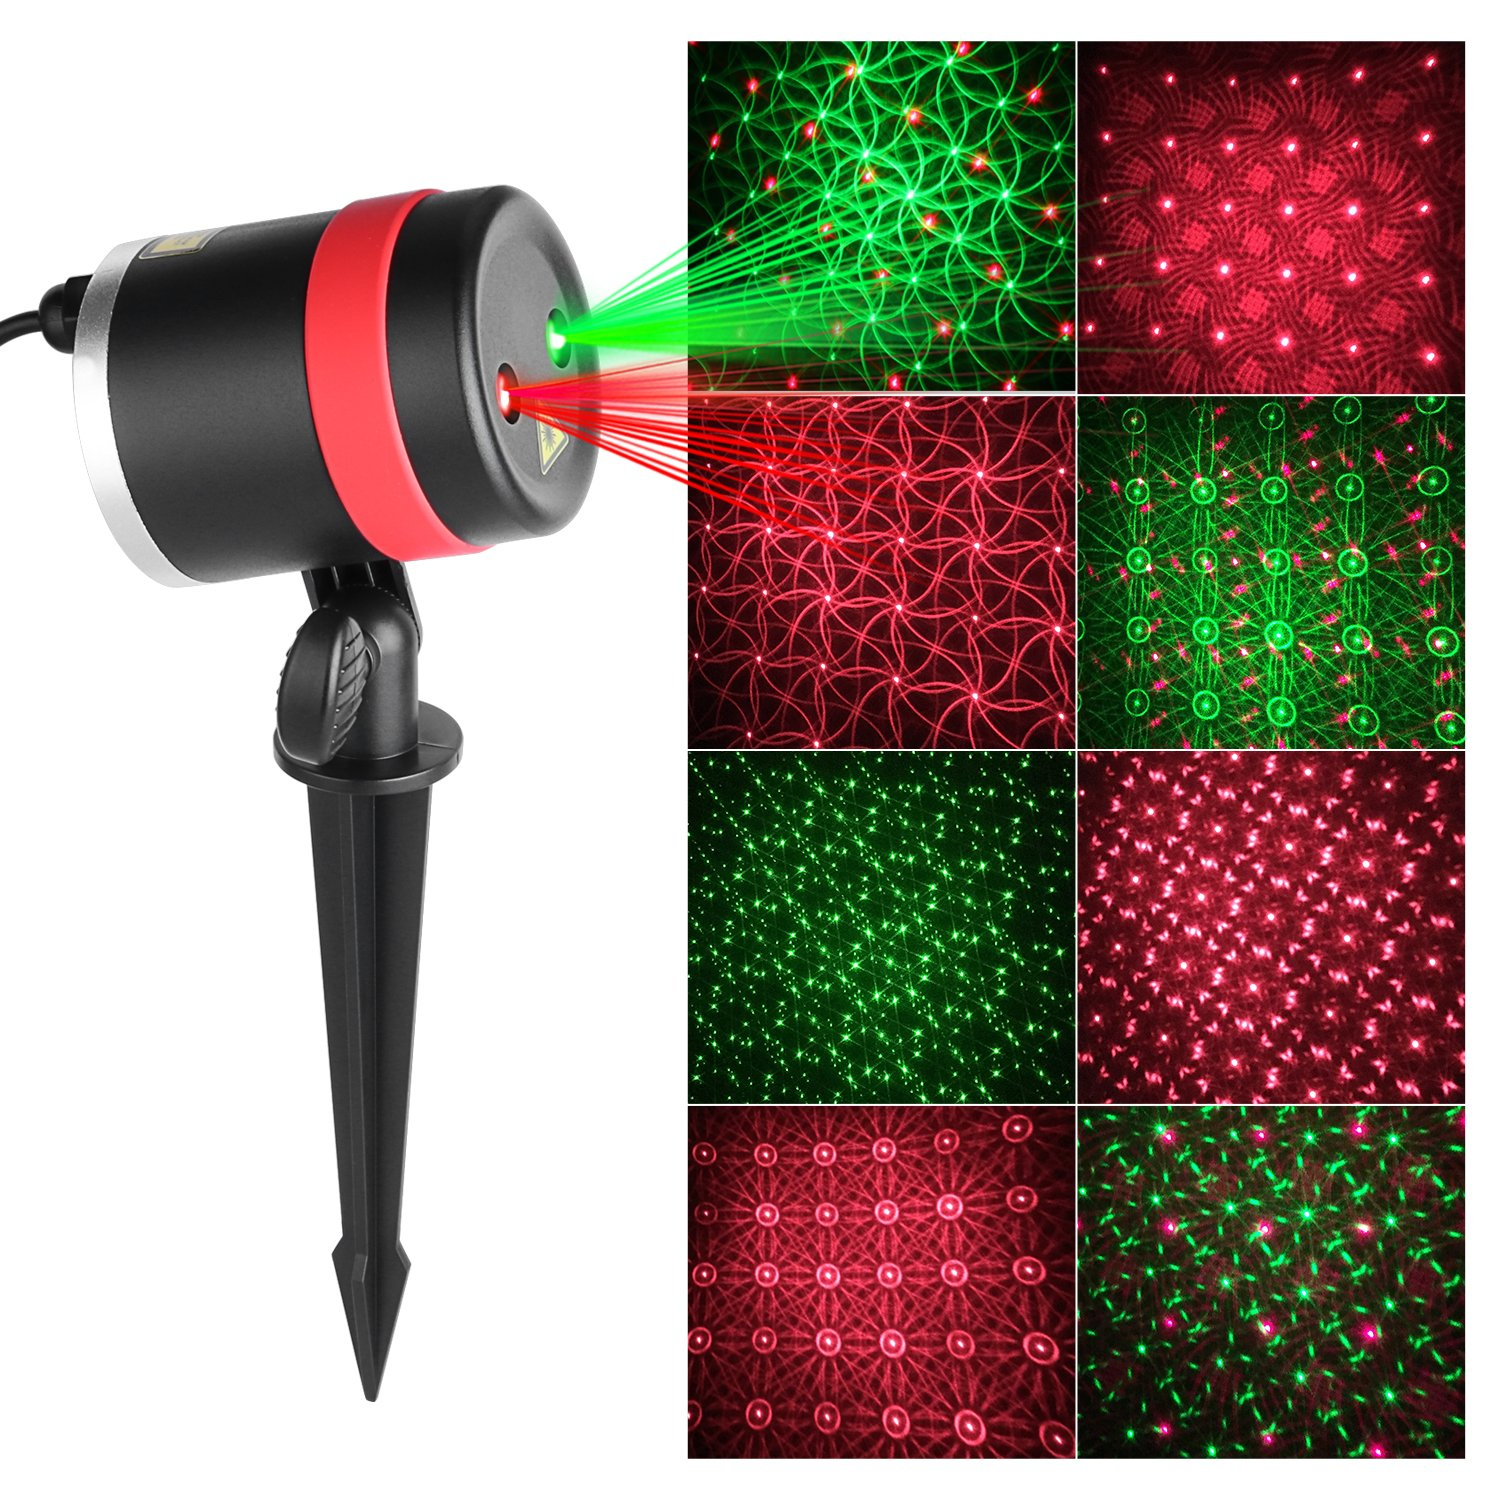 Laser Garden Light, MixMart IP65 Waterproof Red and Green Holiday Projector Lights Outdoor Decorative Lighting Projectors for Holiday Party Landscape Patio Lawn Decoration